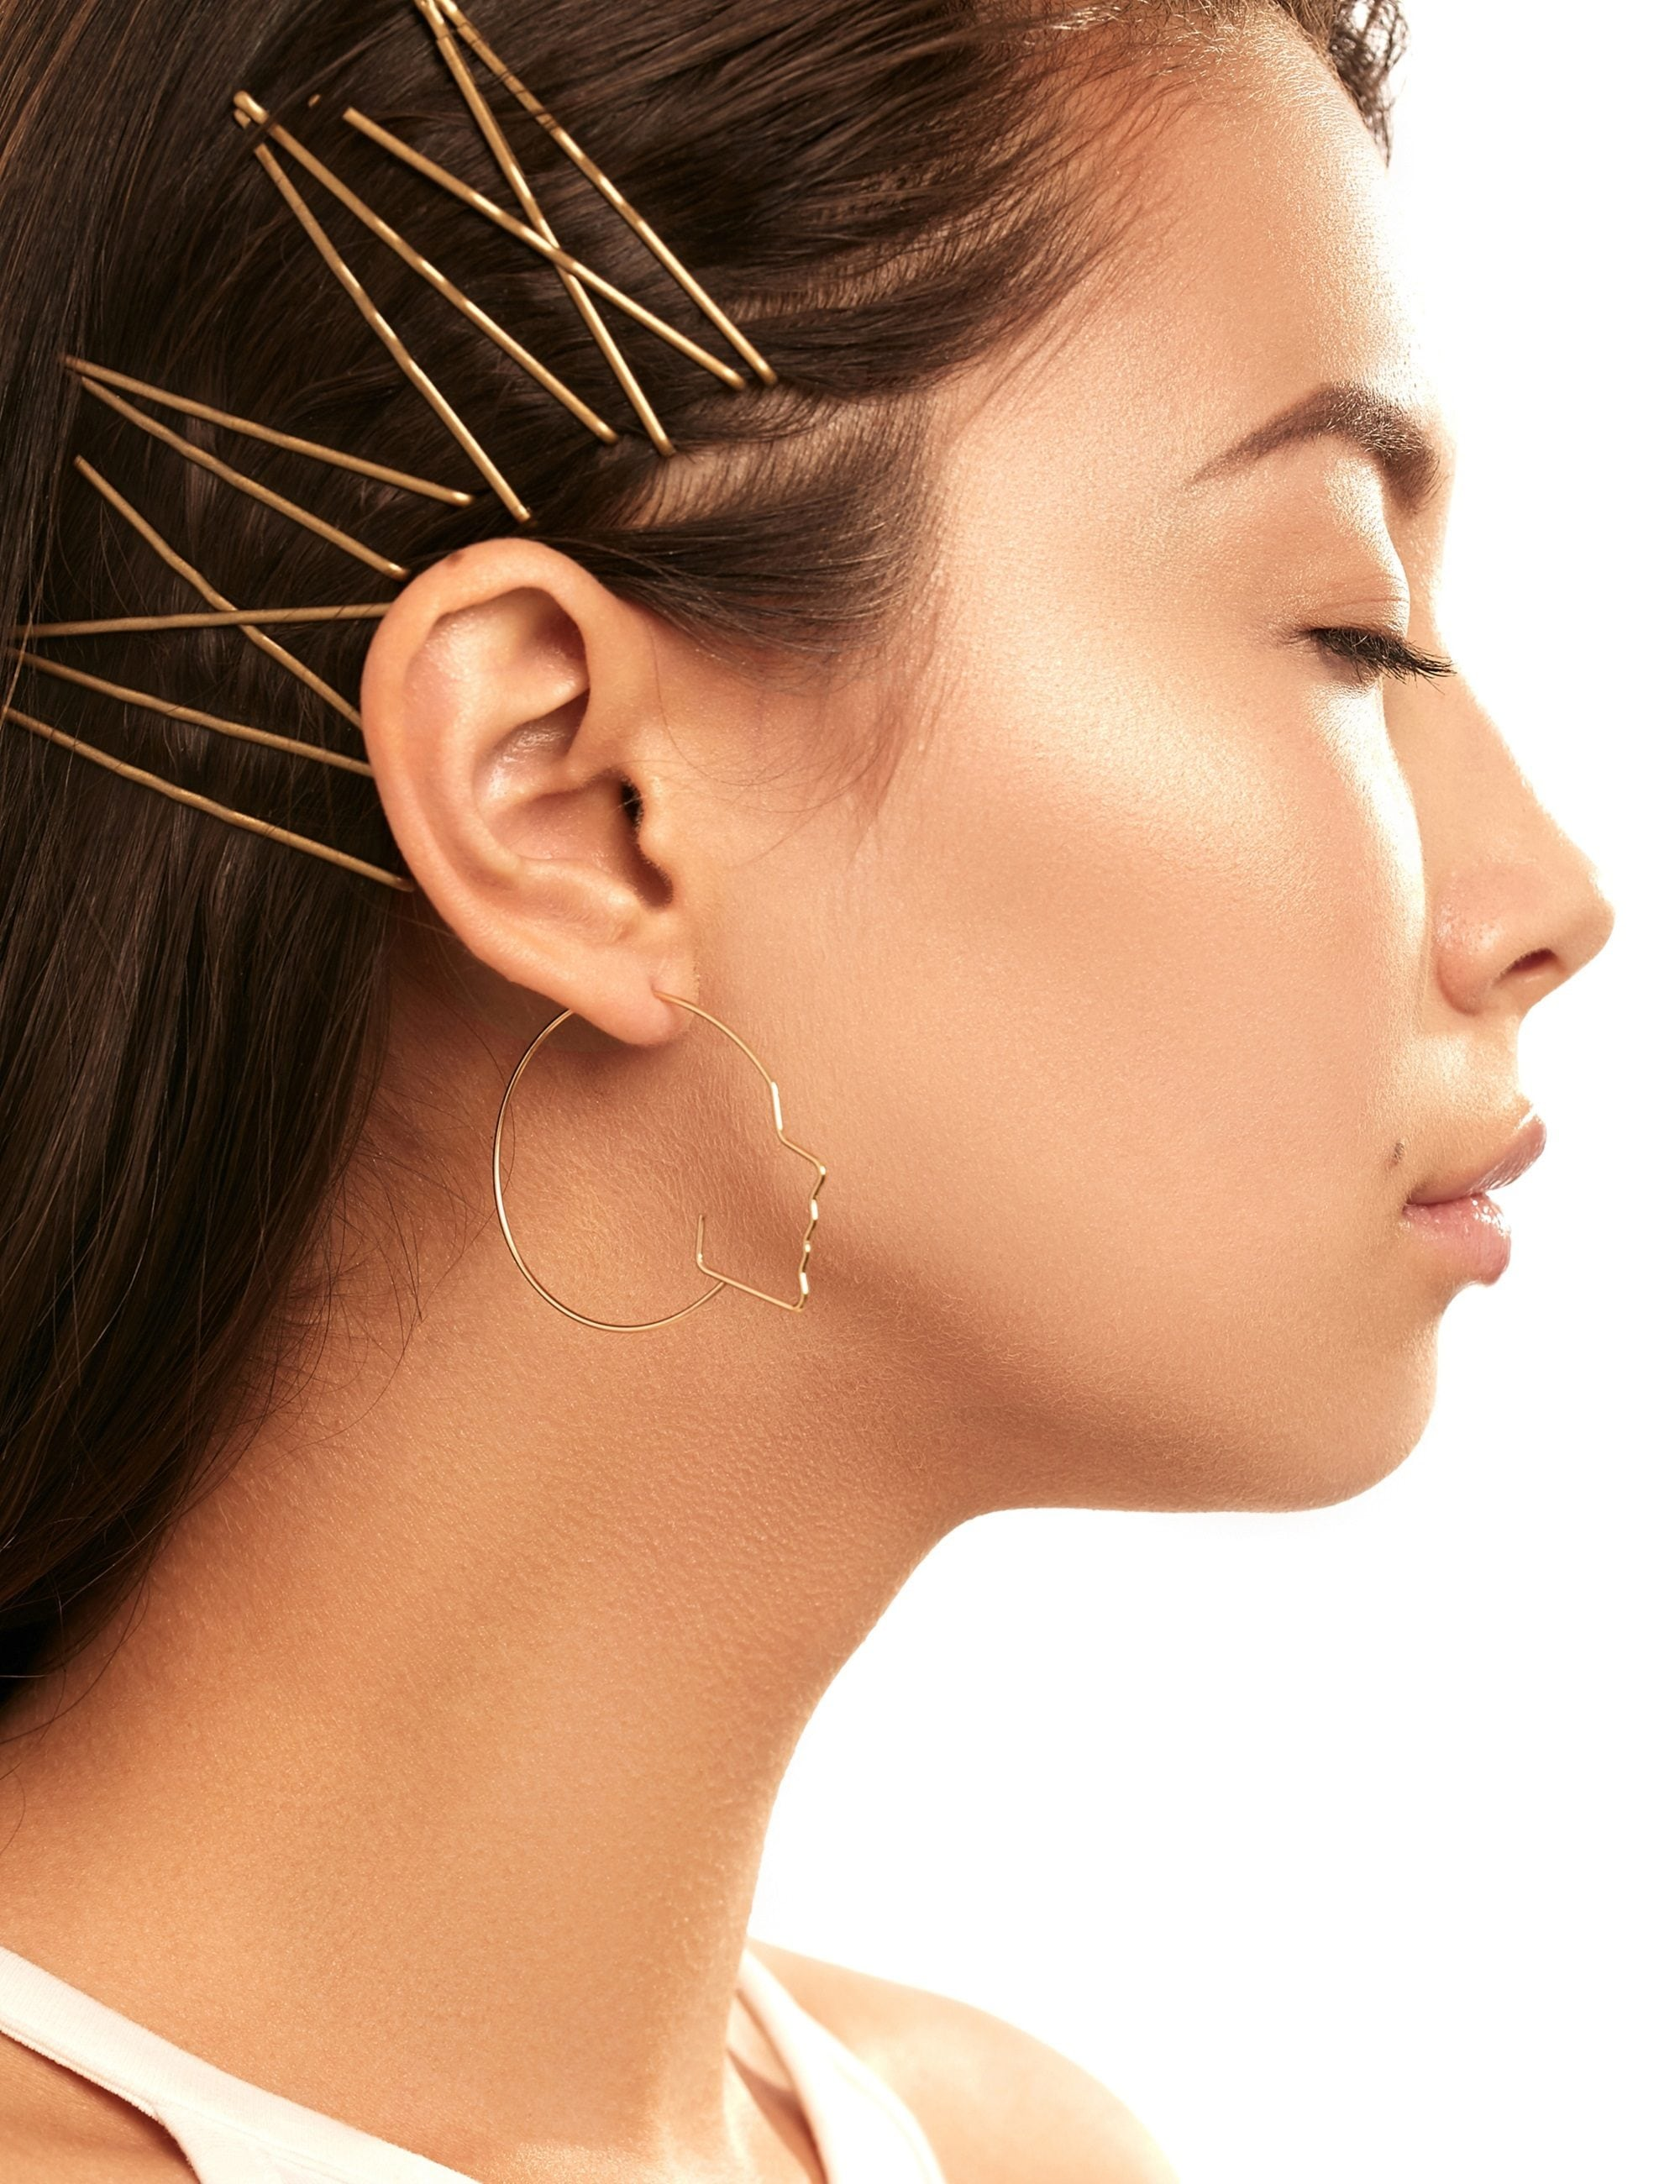 Hair clip hairstyles: Closeup side view of a woman with long black hair with gold bobby pins